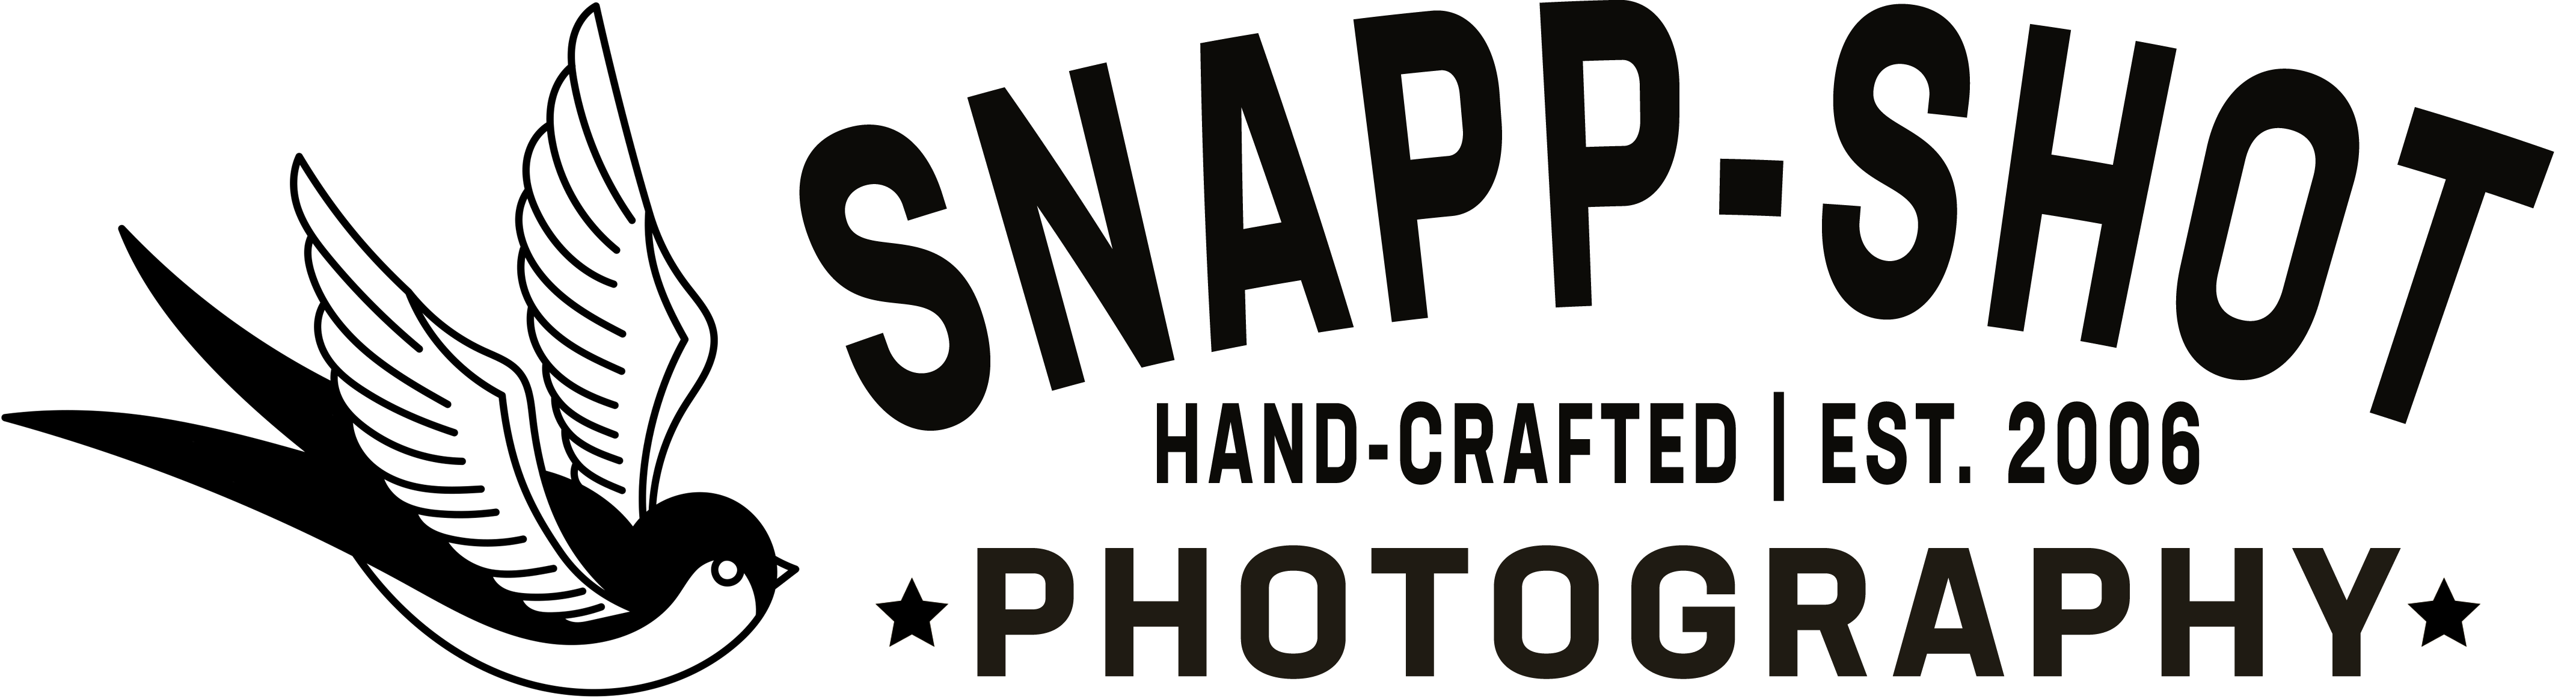 Snapp-Shot Photography